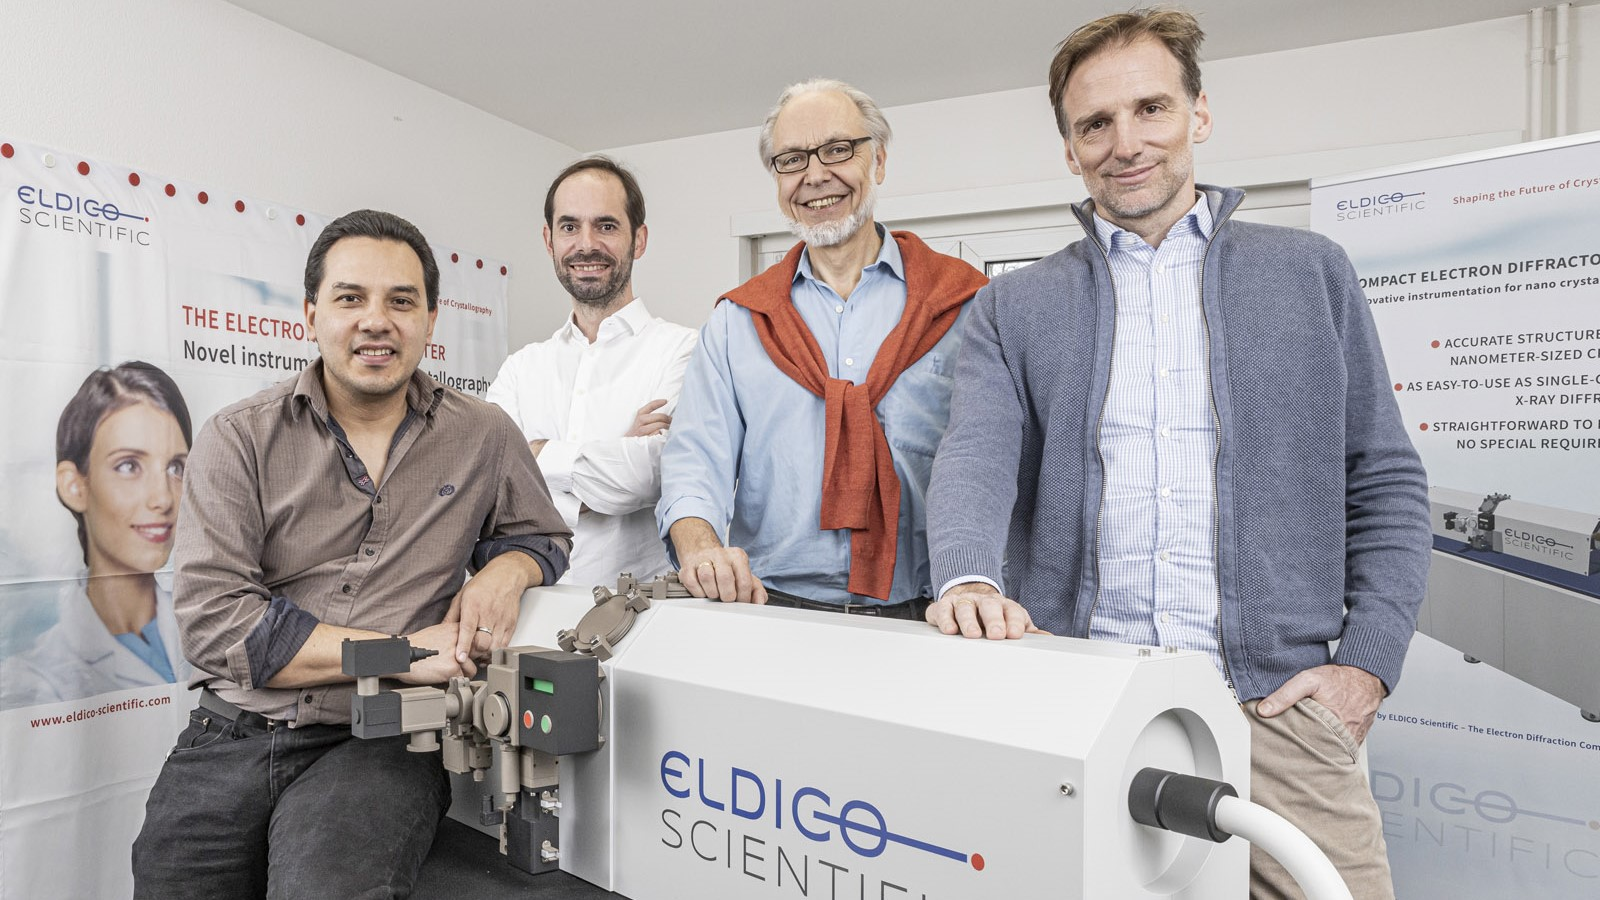 The ELDICO team Gustavo Santiso-Quinones, Nils Gebhardt, Eric Hovestreydt and Gunther Steinfeld with the electron diffractometer